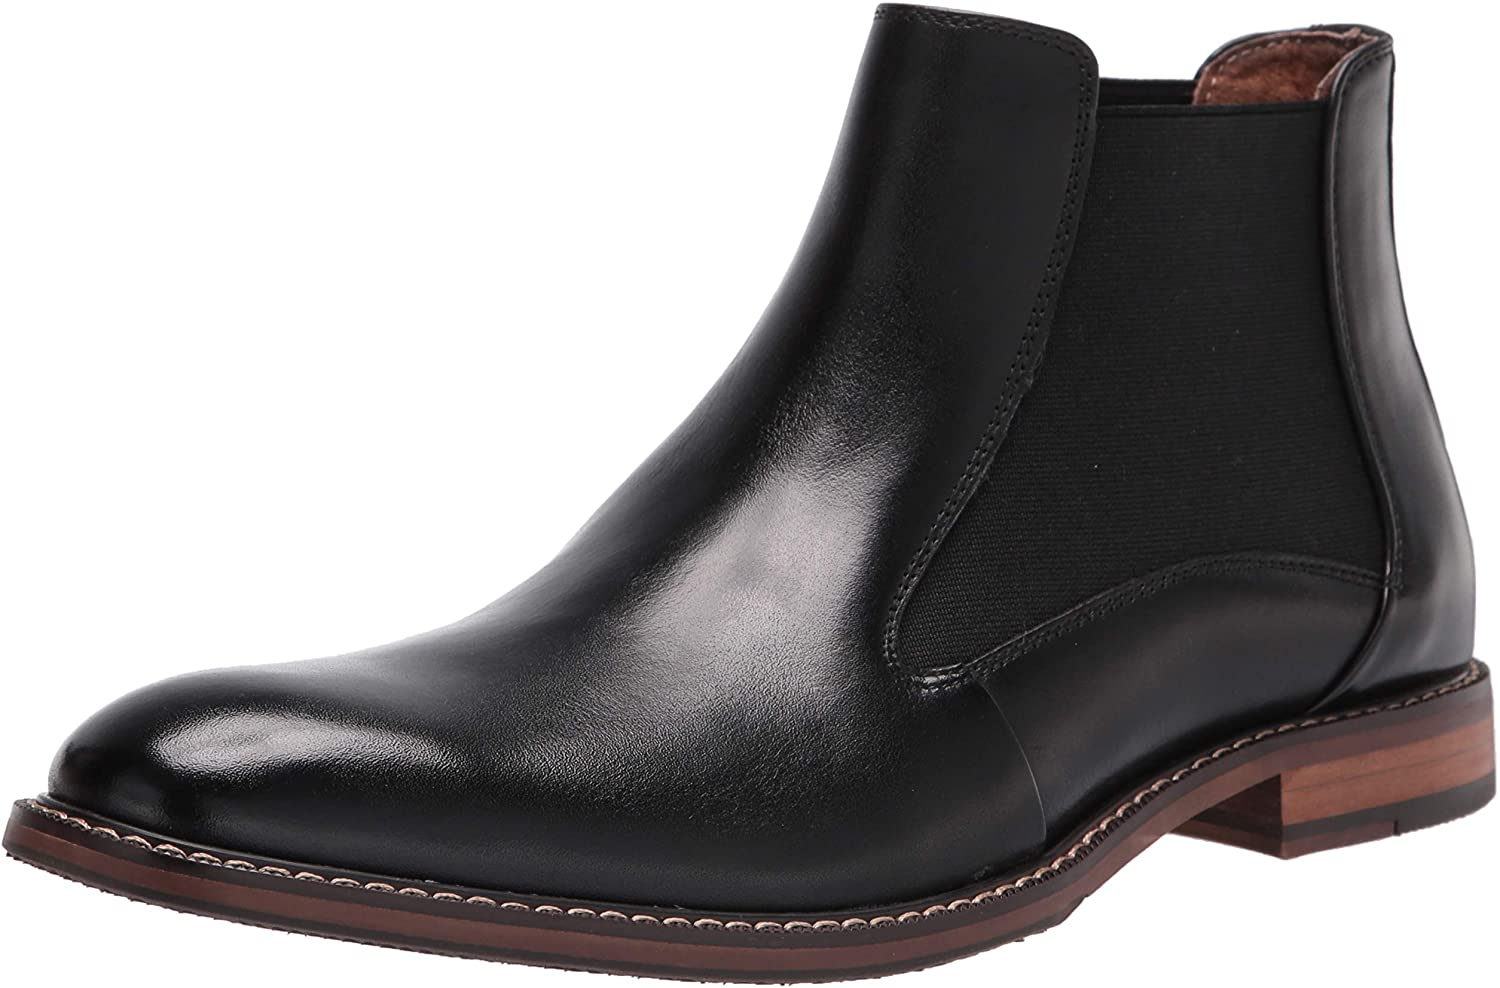 STACY ADAMS Men's Fabian Plain Toe Chelsea Boot